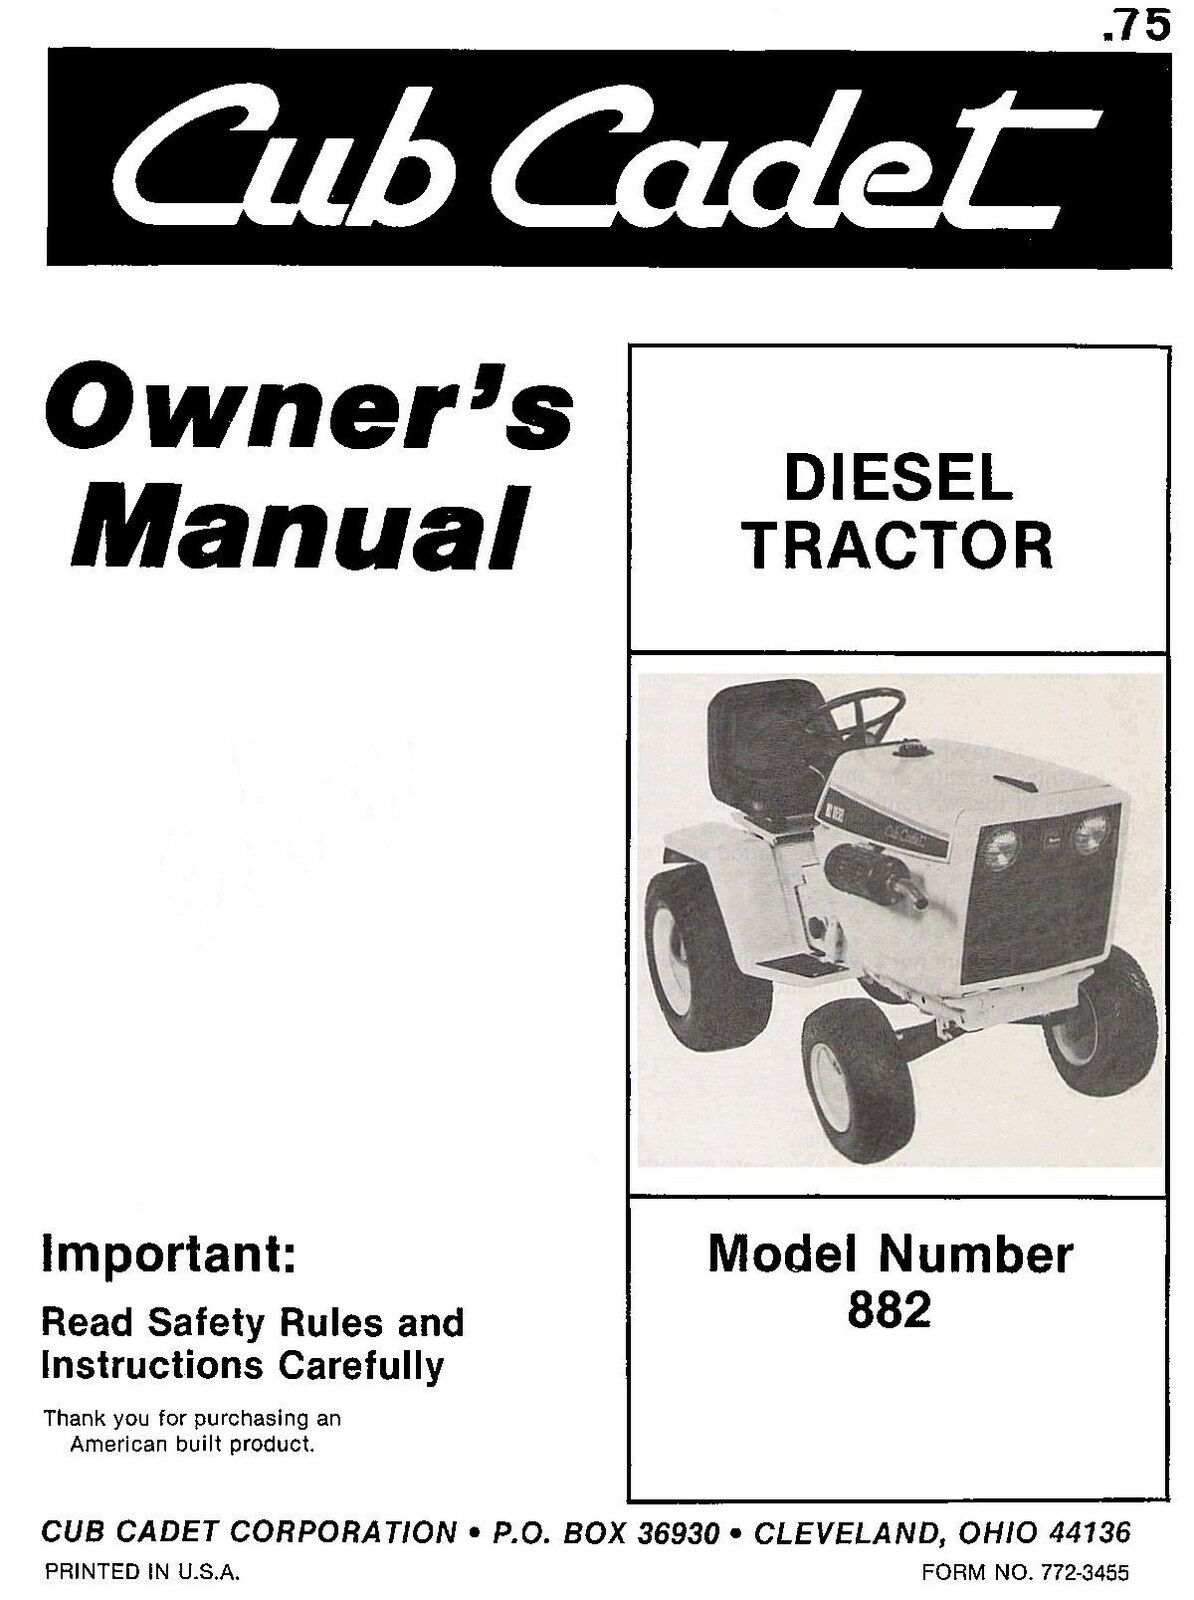 Cub Cadet IH Model 882 Diesel Tractor Operators manual 1 of 5FREE Shipping  ...